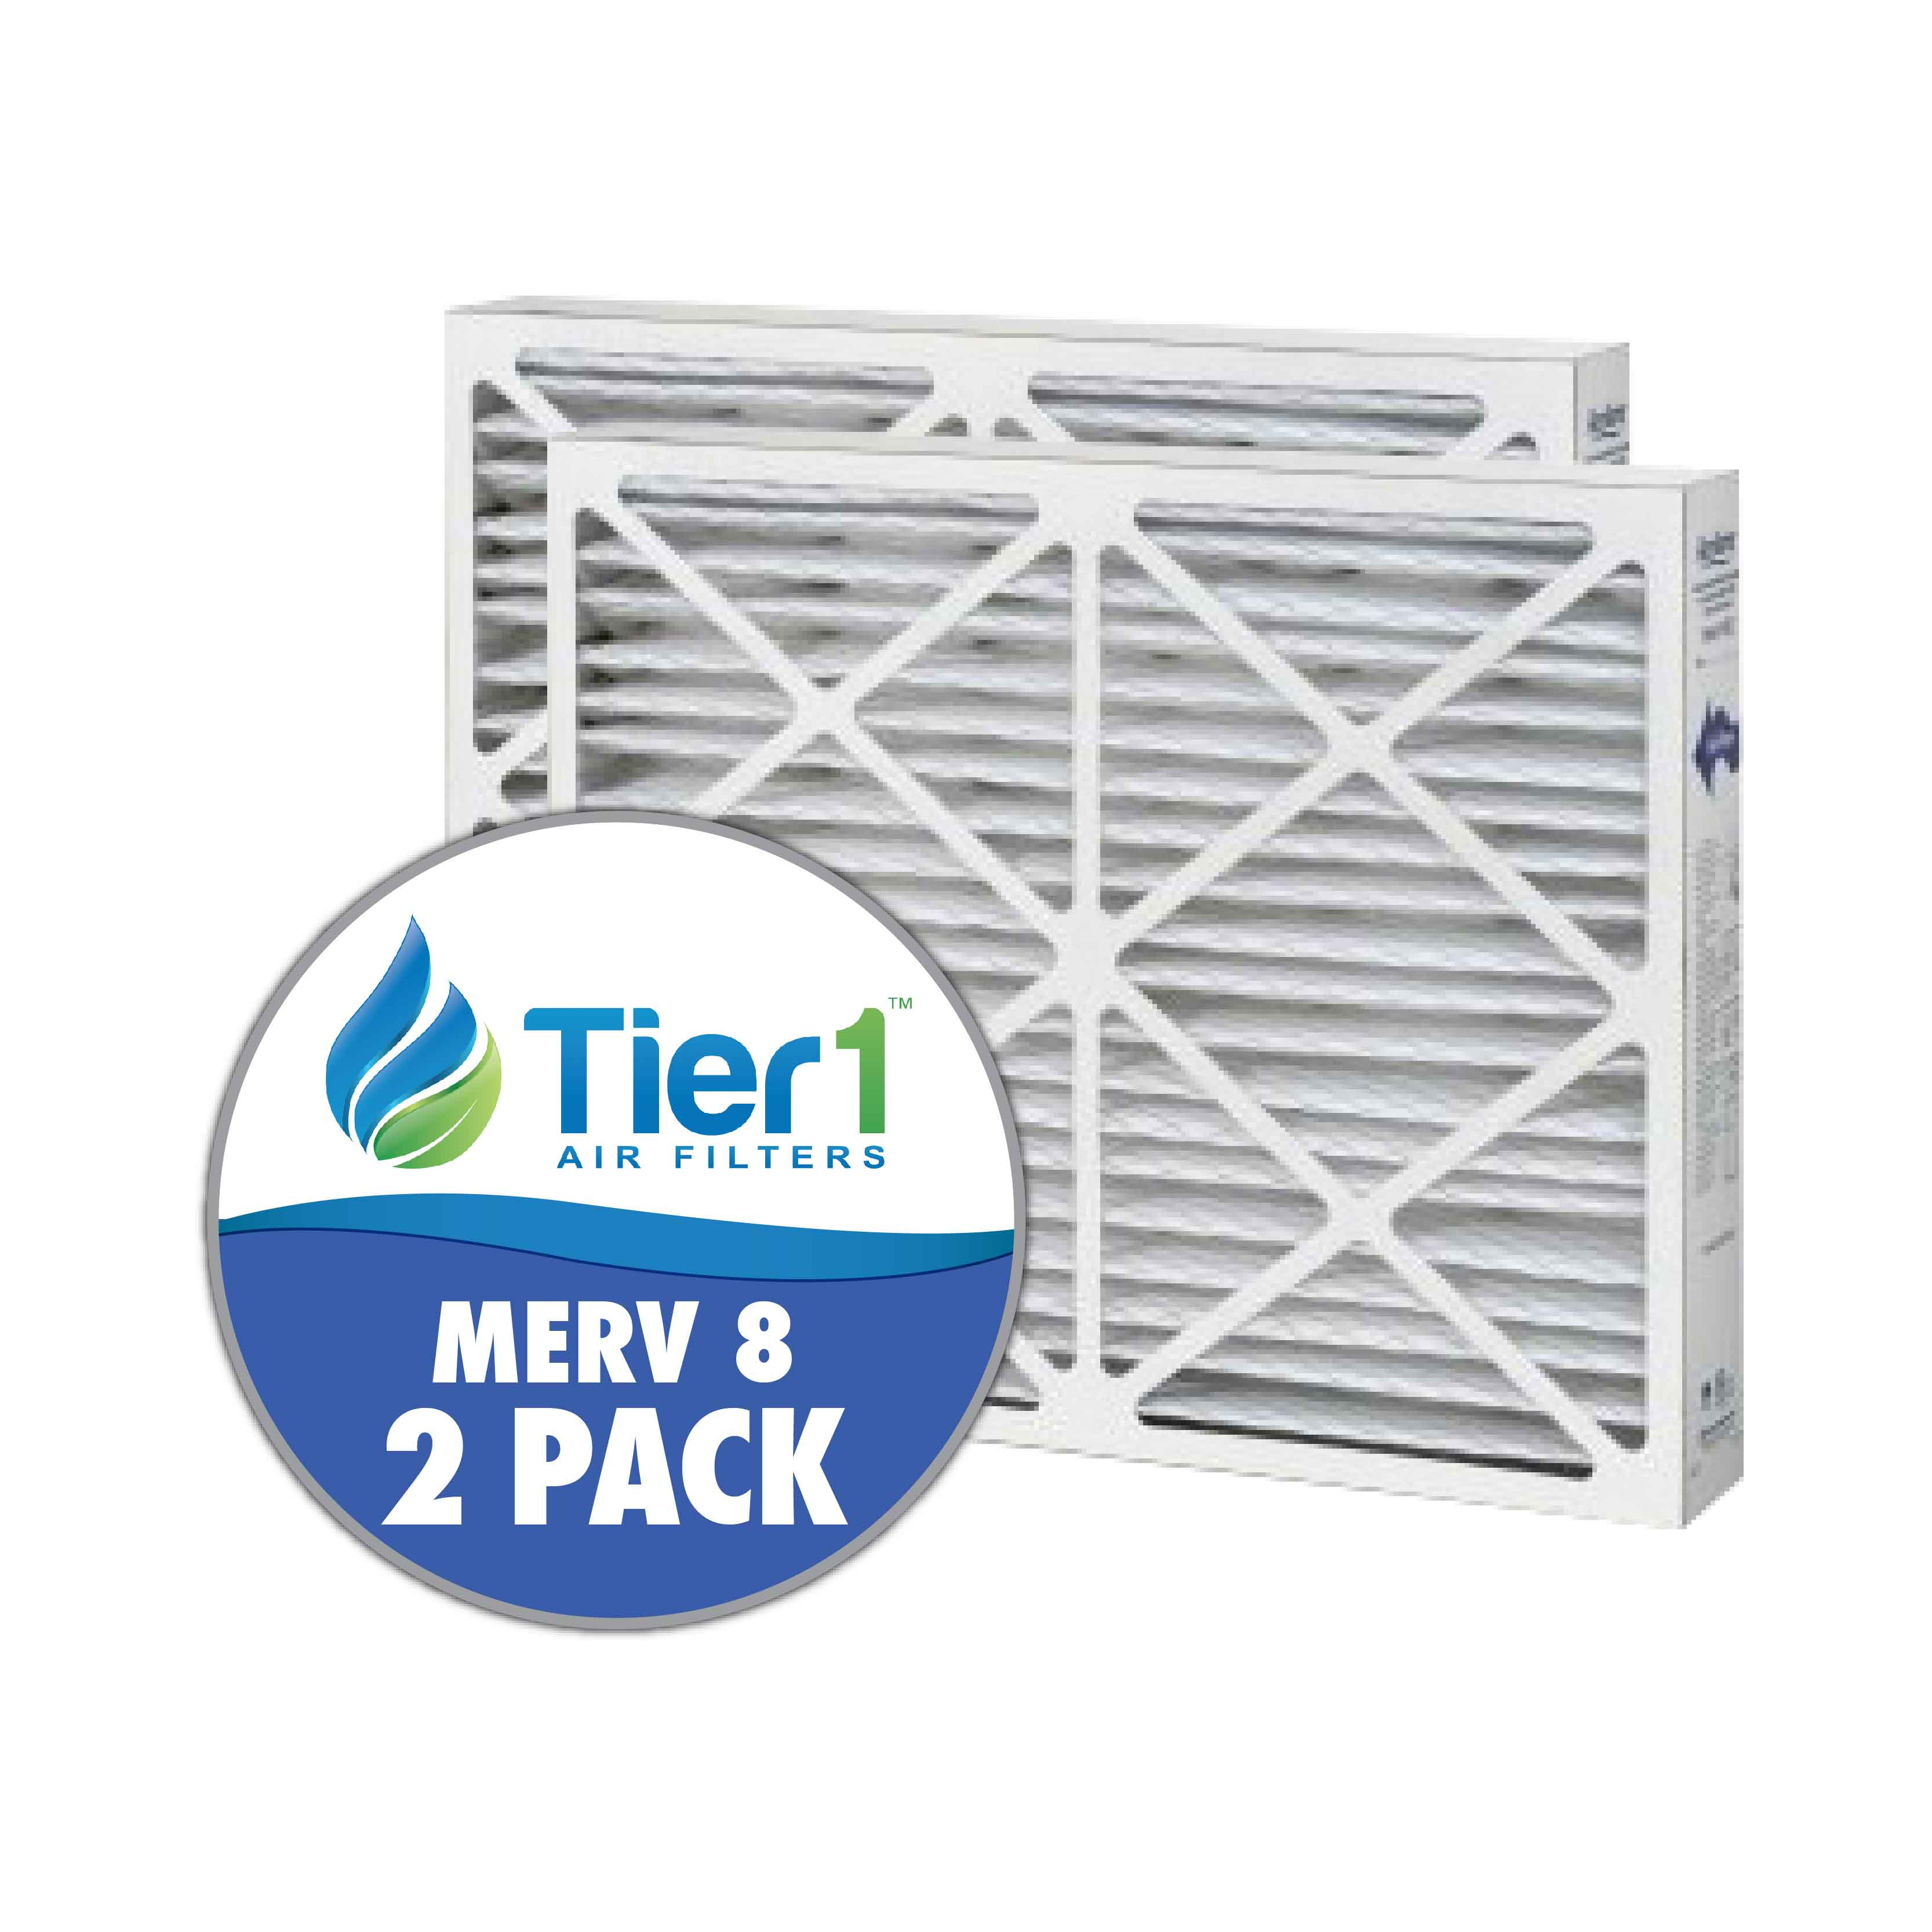 Tier1 brand replacement for Aprilaire #201 - 20 x 25 x 6 - MERV 8 (2-Pack) TIER1-DPFS20X25X6